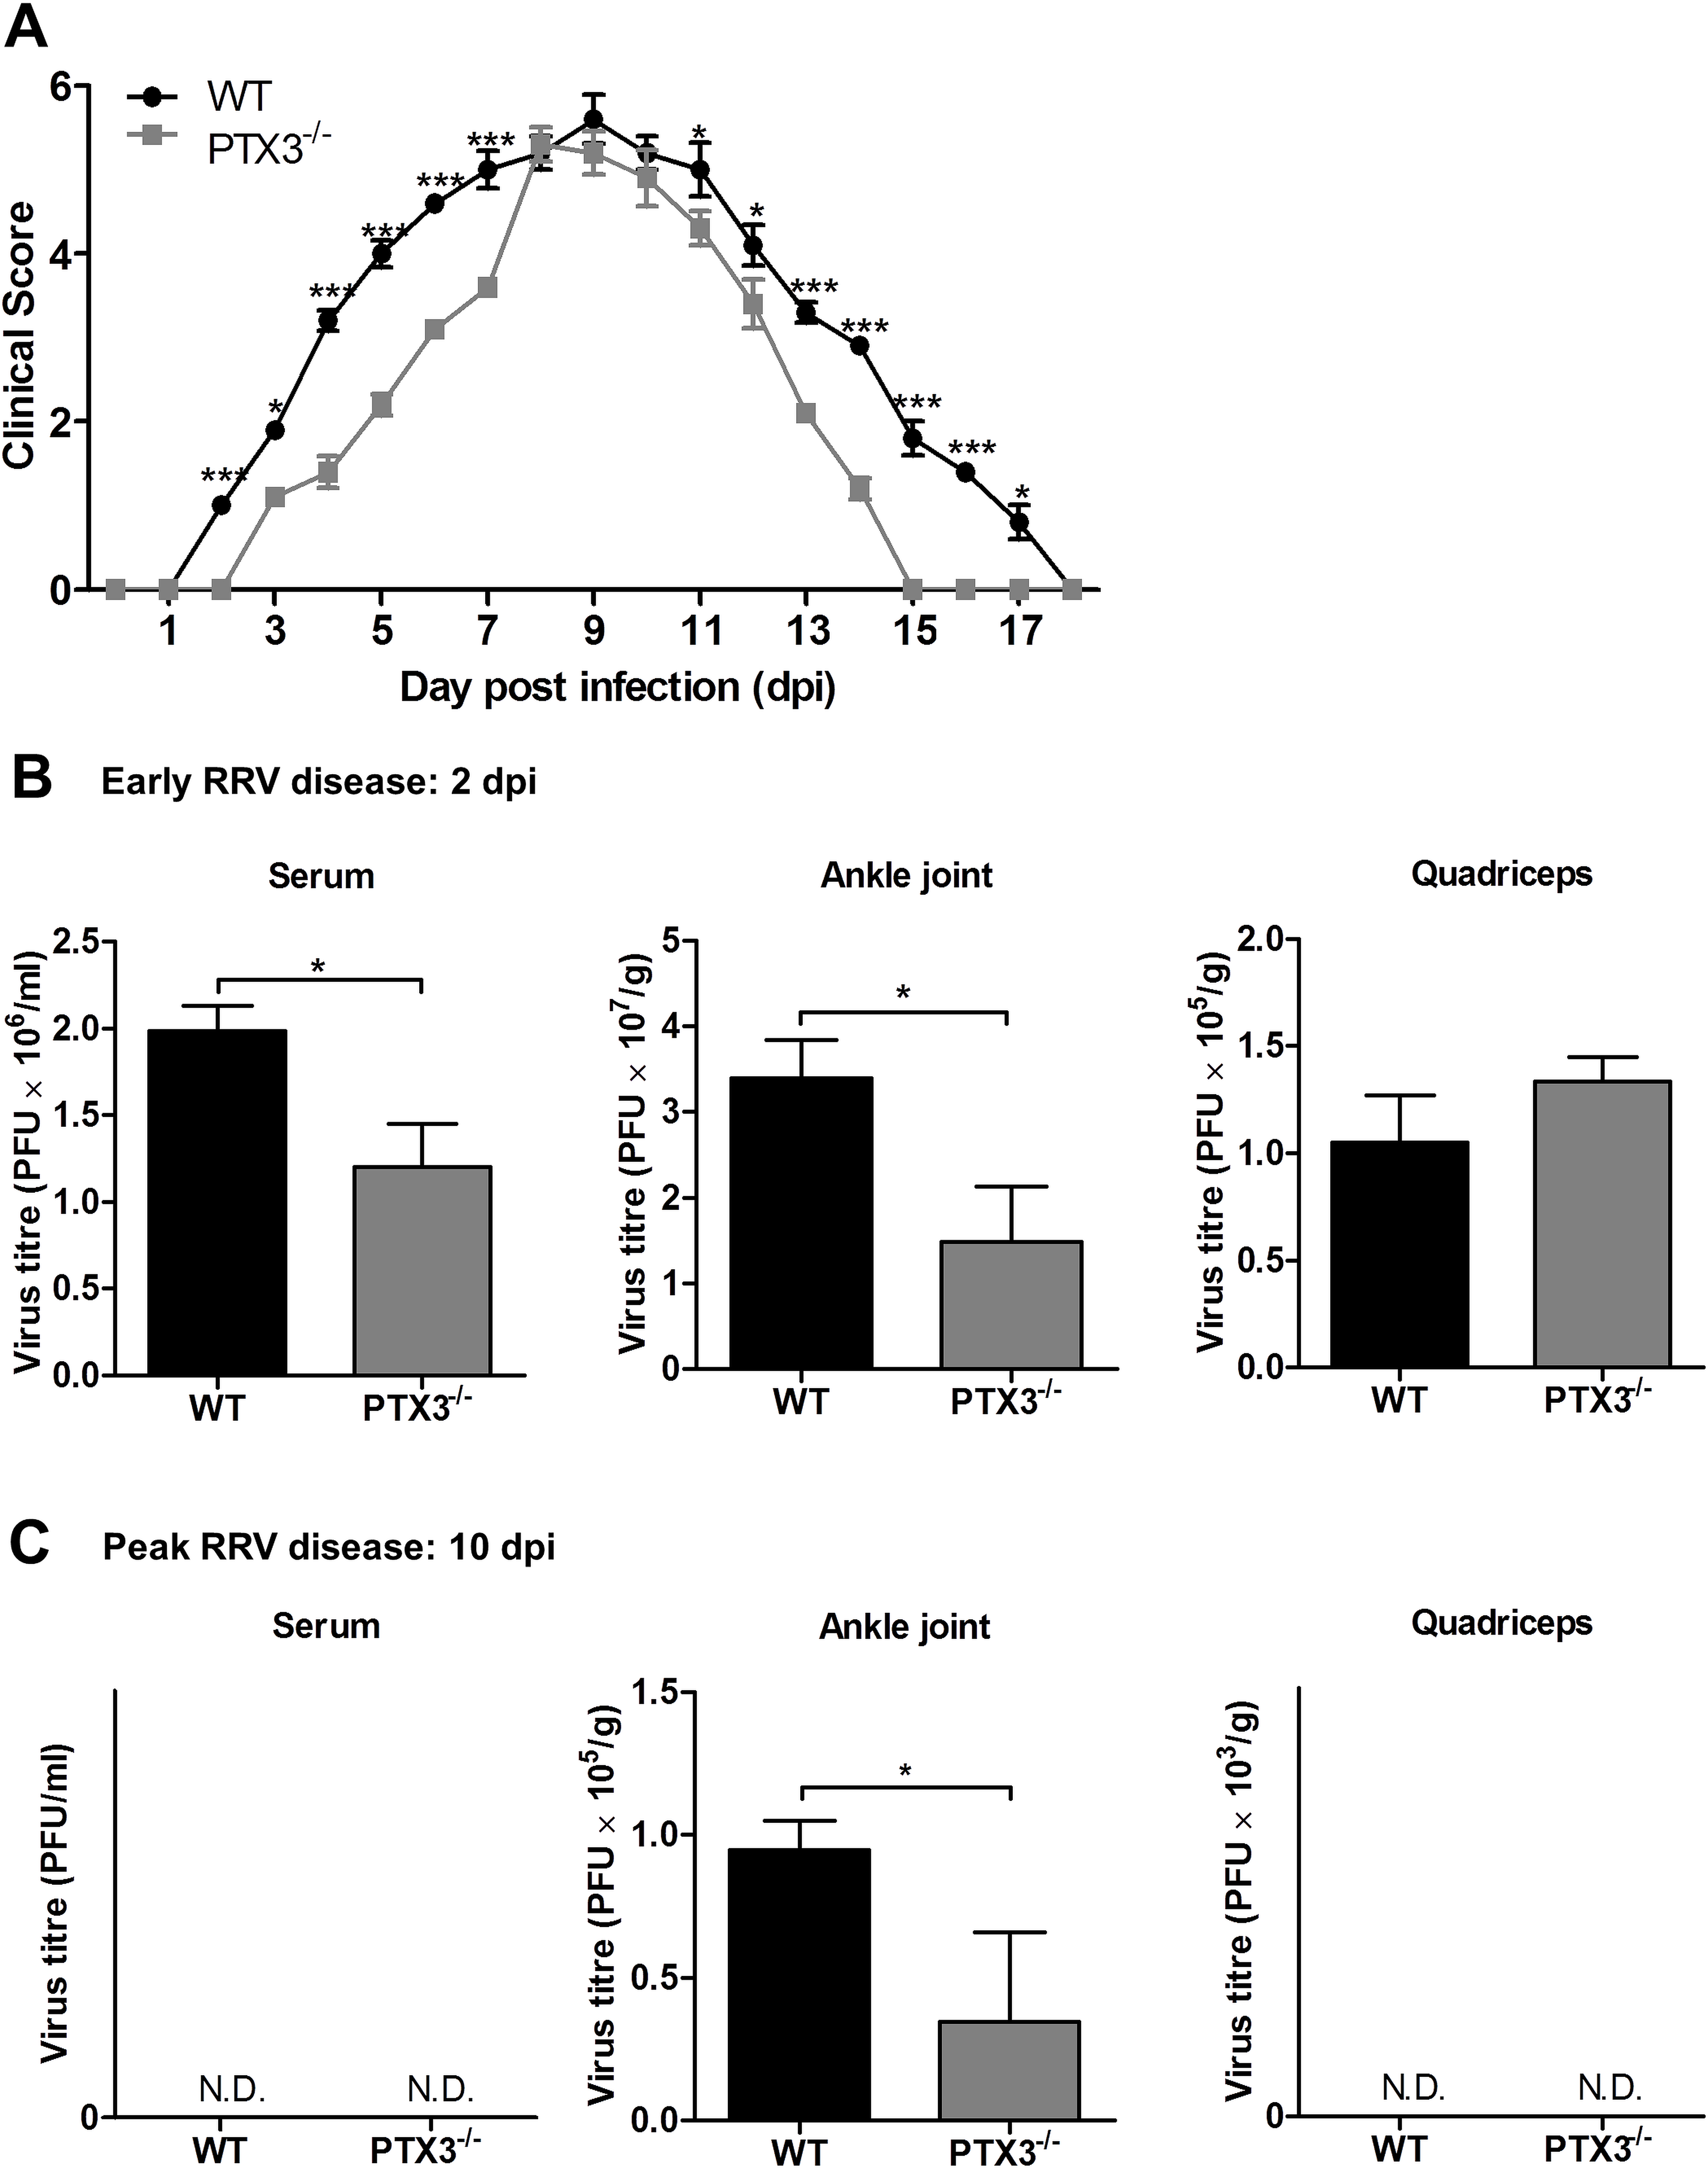 PTX3 modulates RRV replication and disease onset in mice.